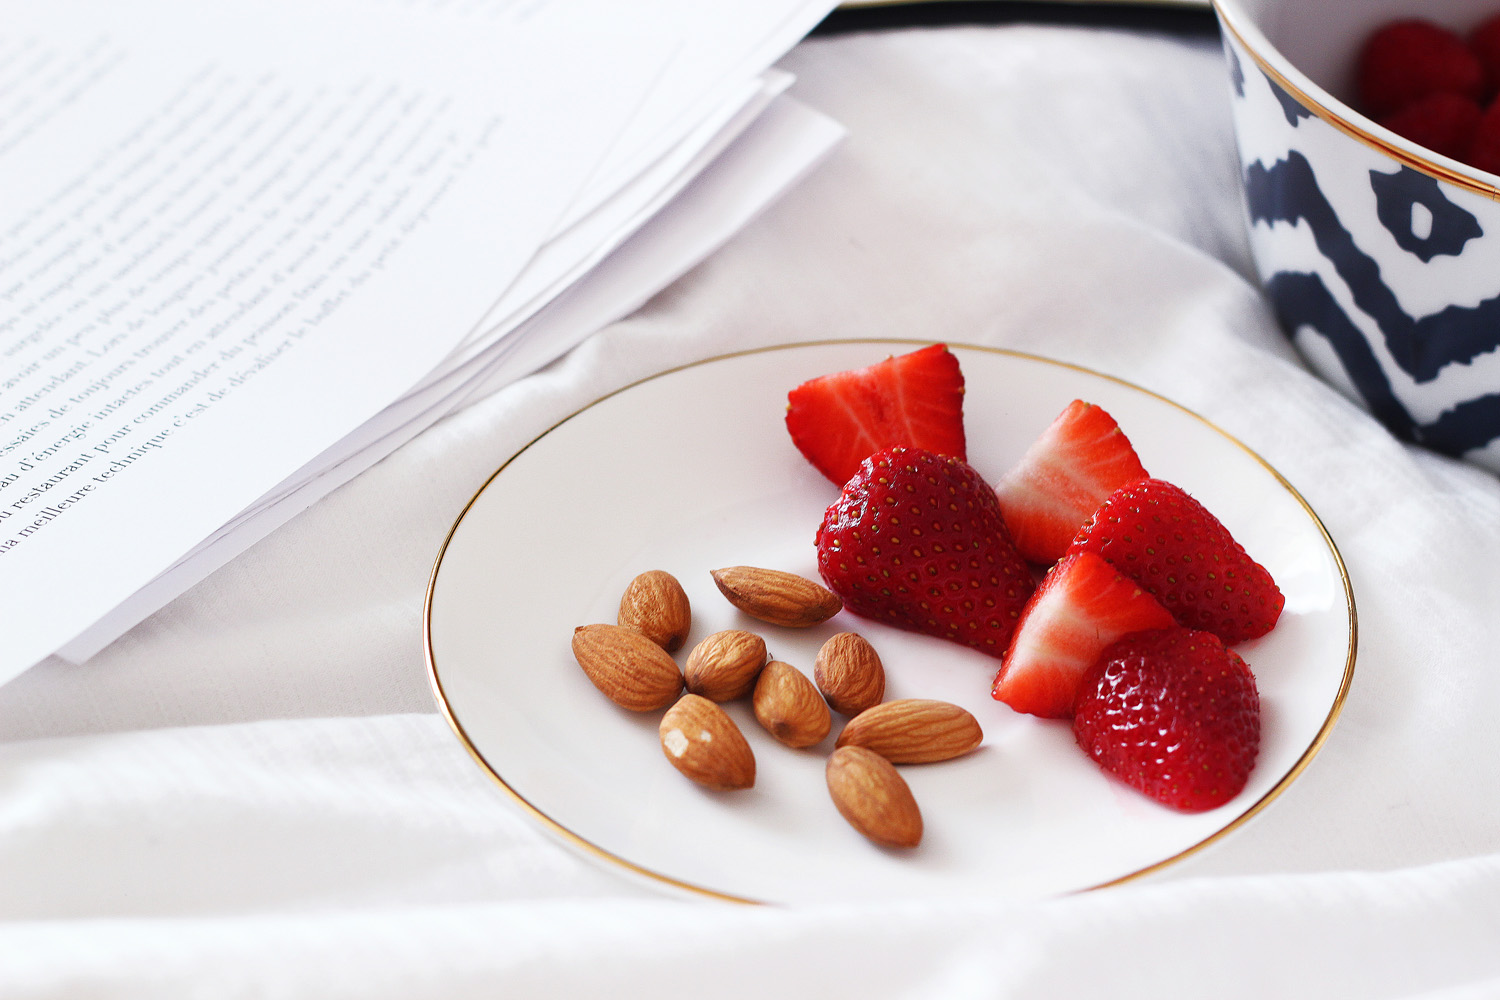 Kayture-Healthy-Snack-Ideas.001